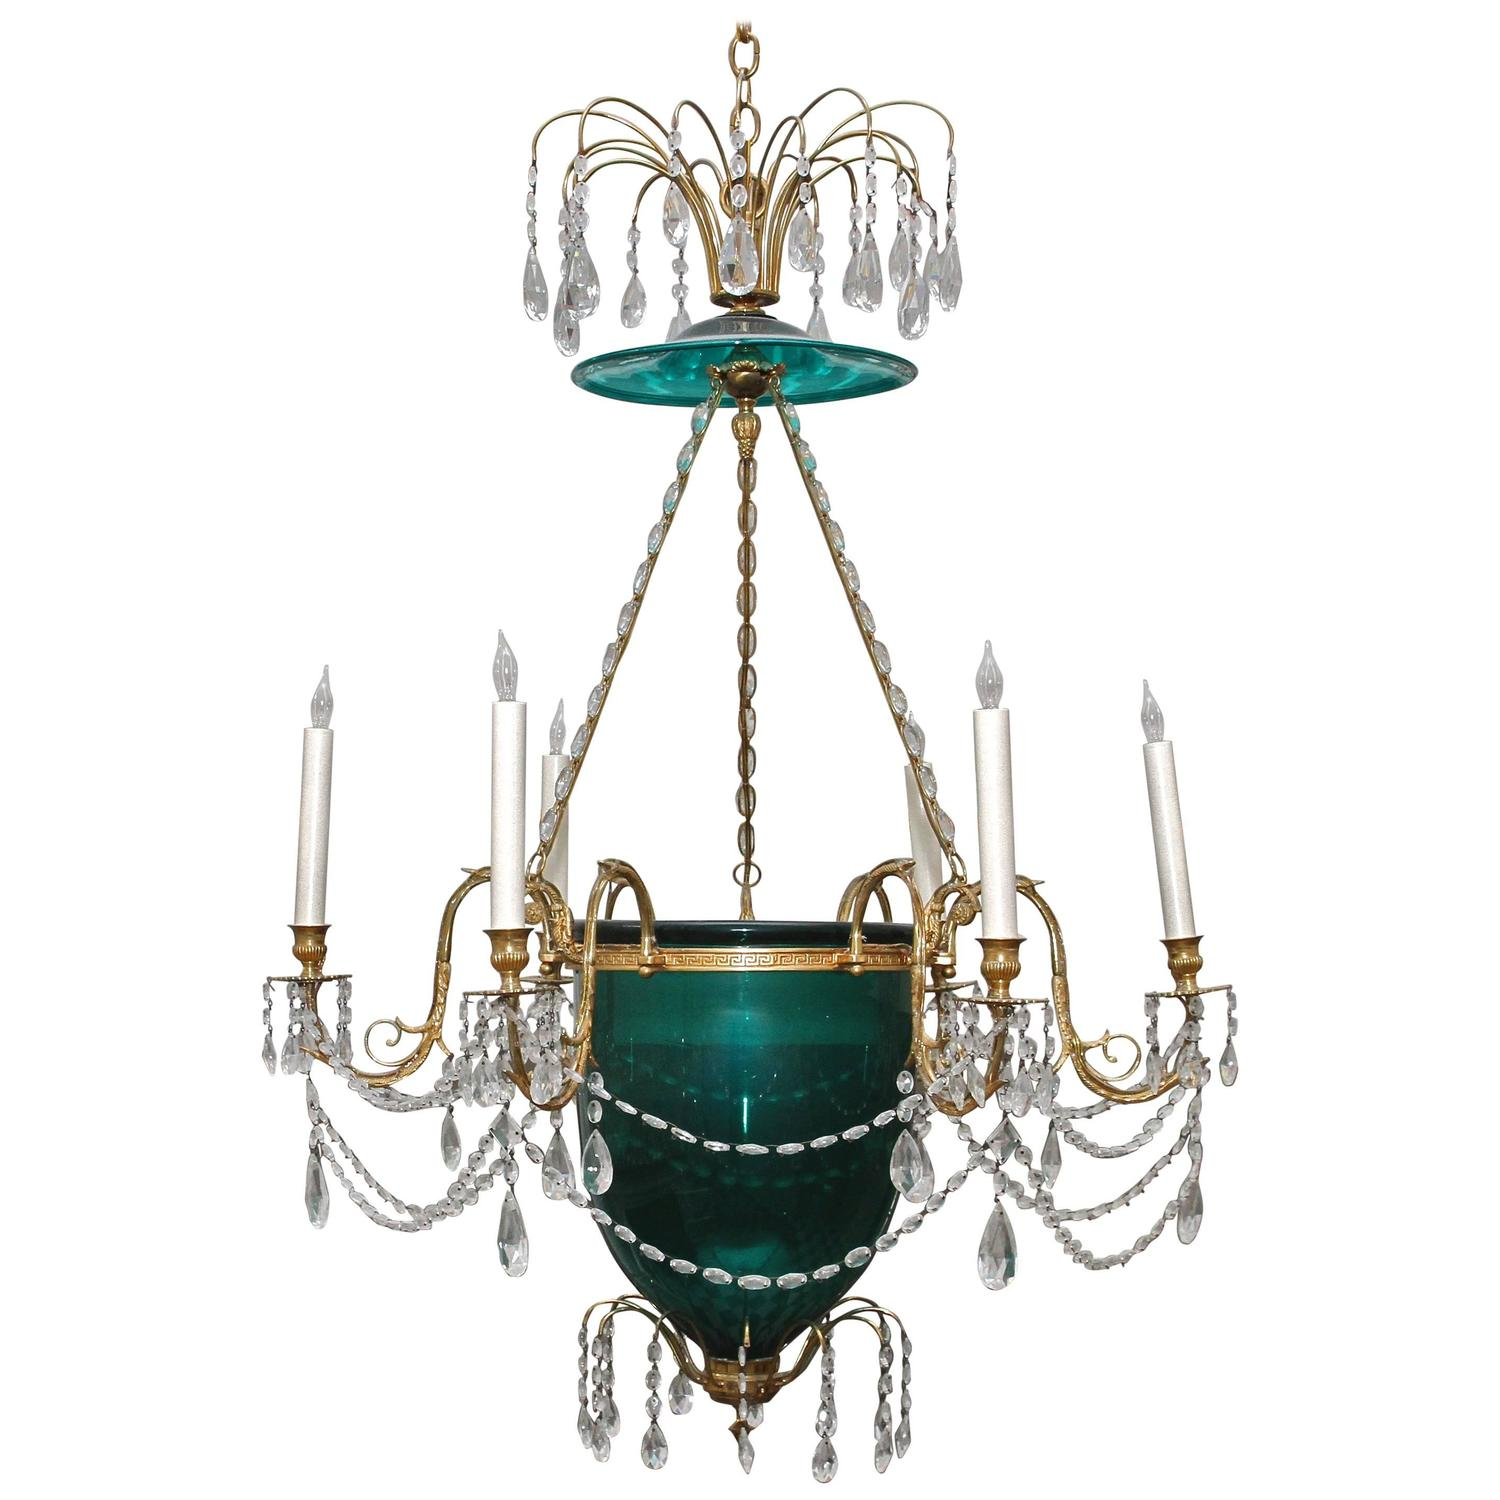 slag and arts chandeliers architectural glass chandelier antiques dering lighting hall crafts metal green